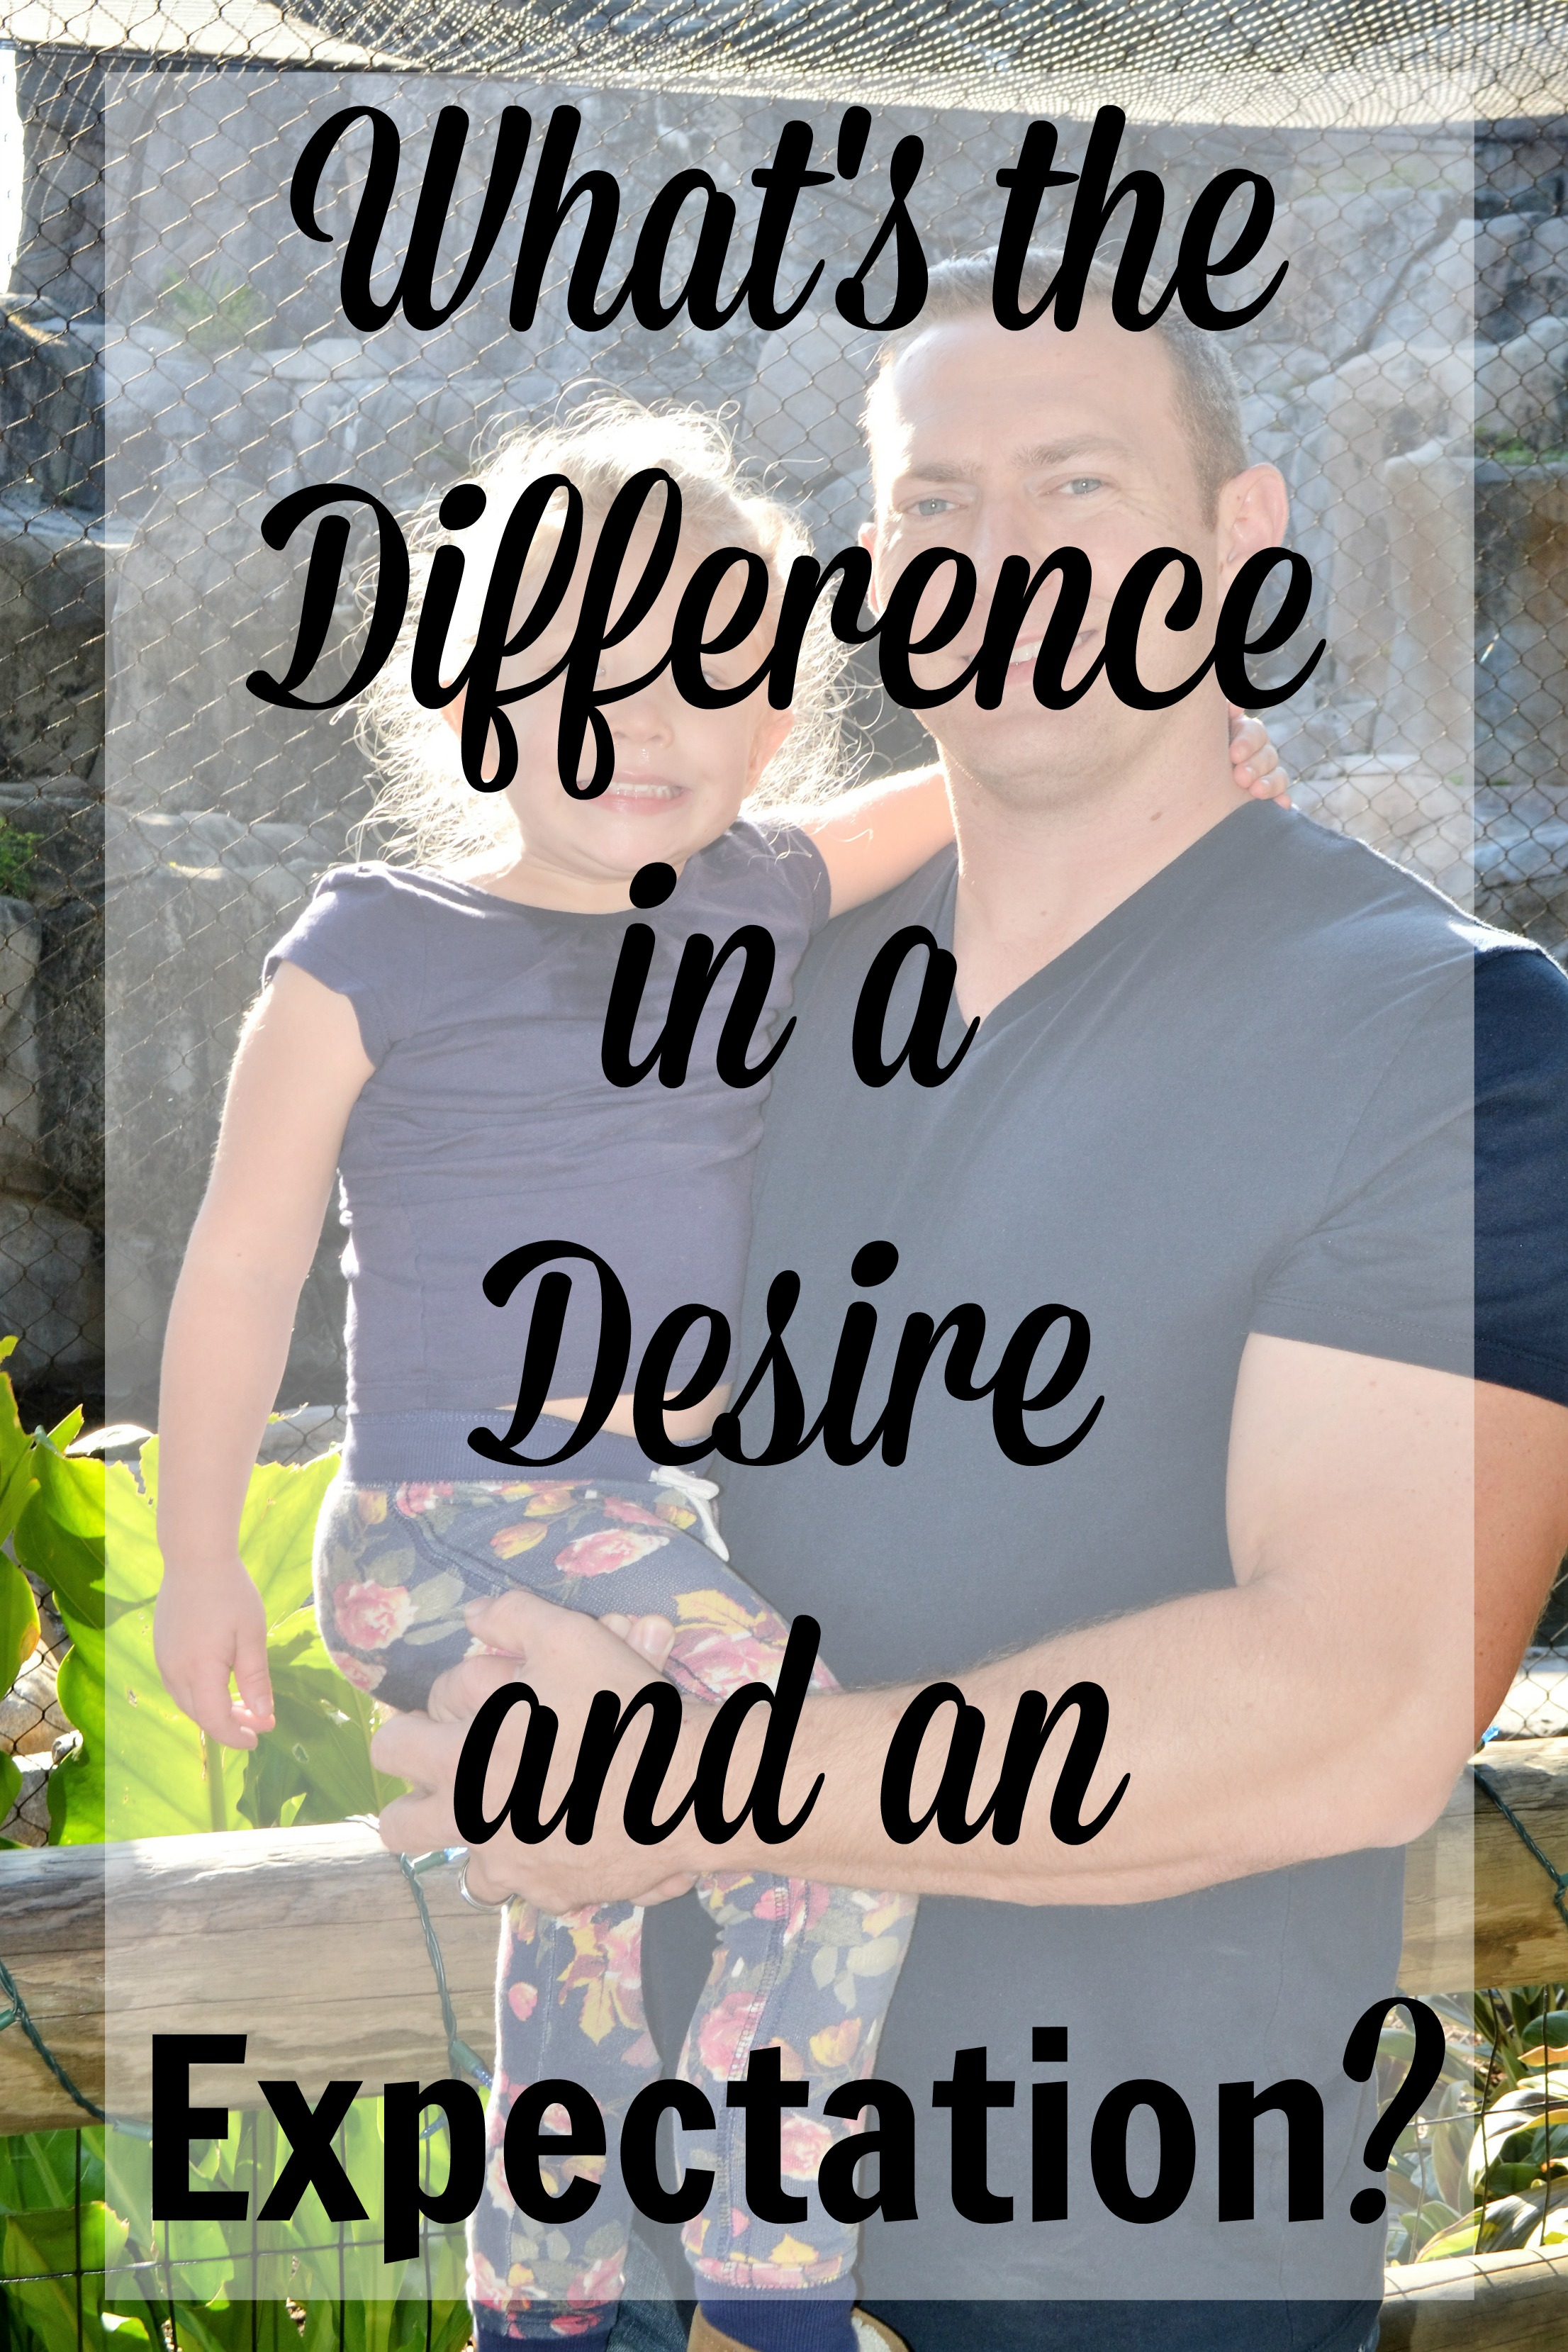 What's the difference in a desire and an expectation